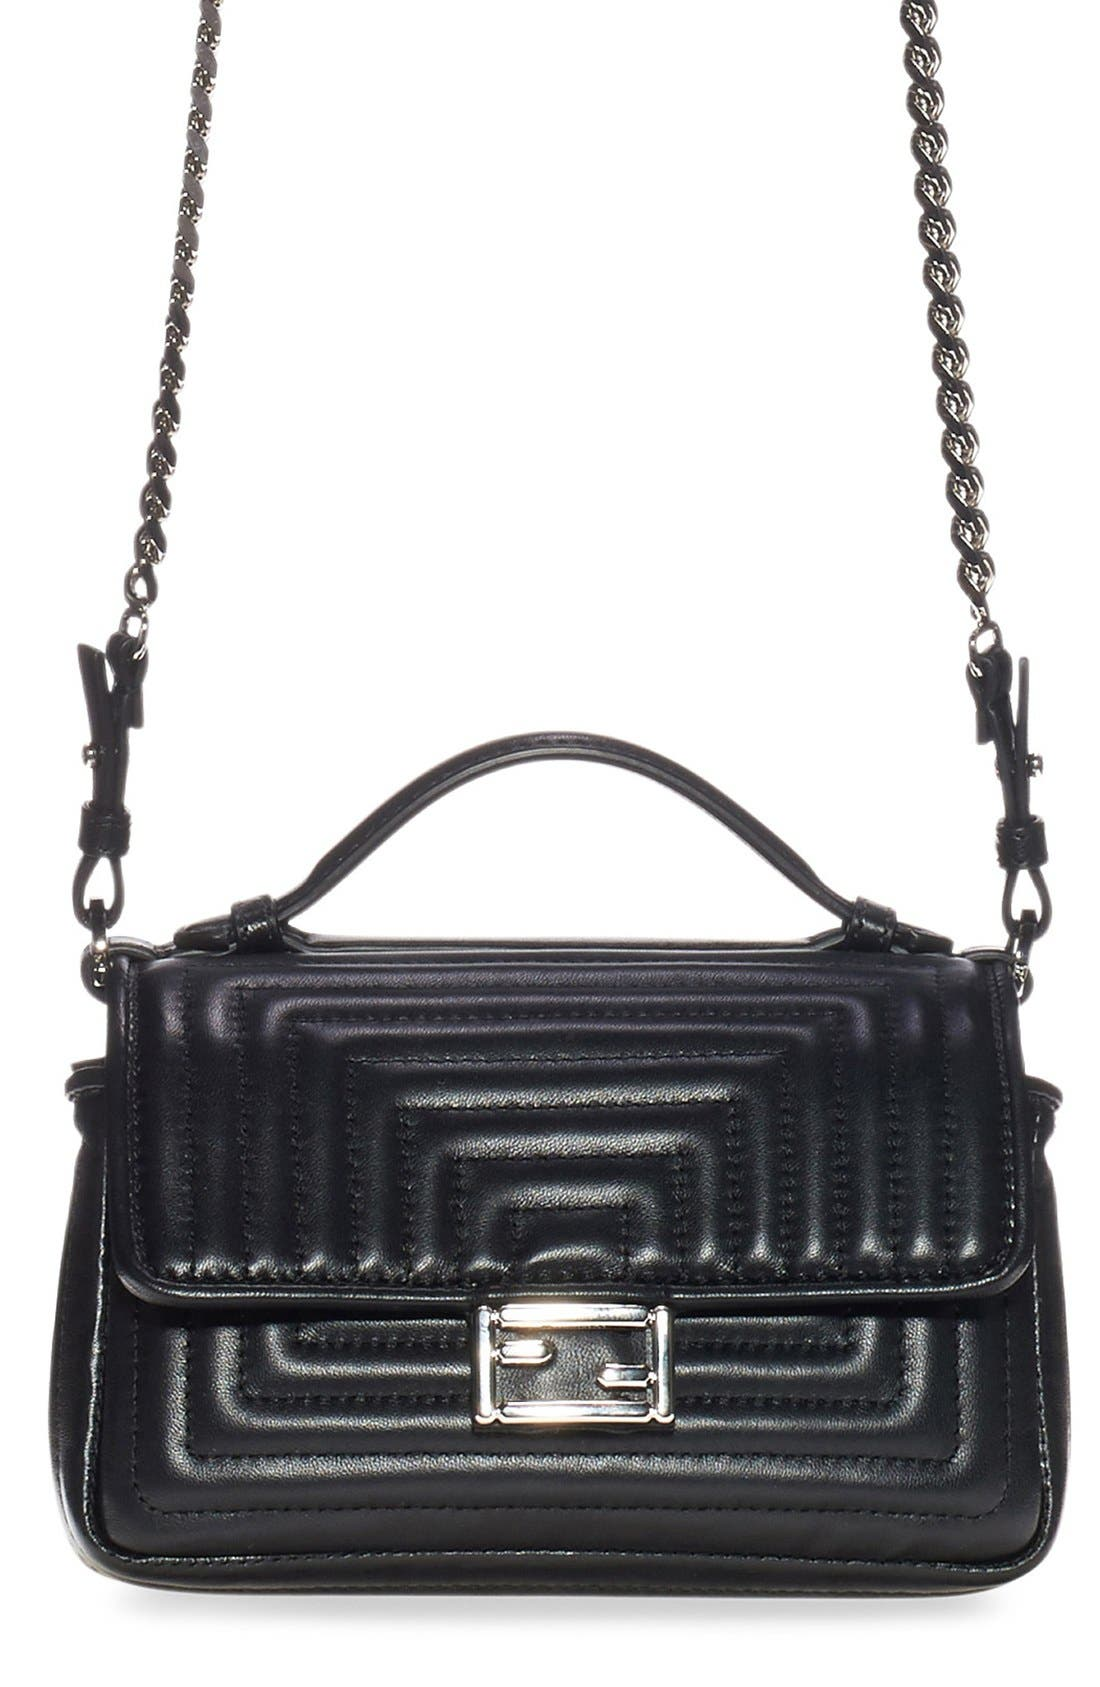 FENDI 'Double Micro' Quilted Leather Baguette